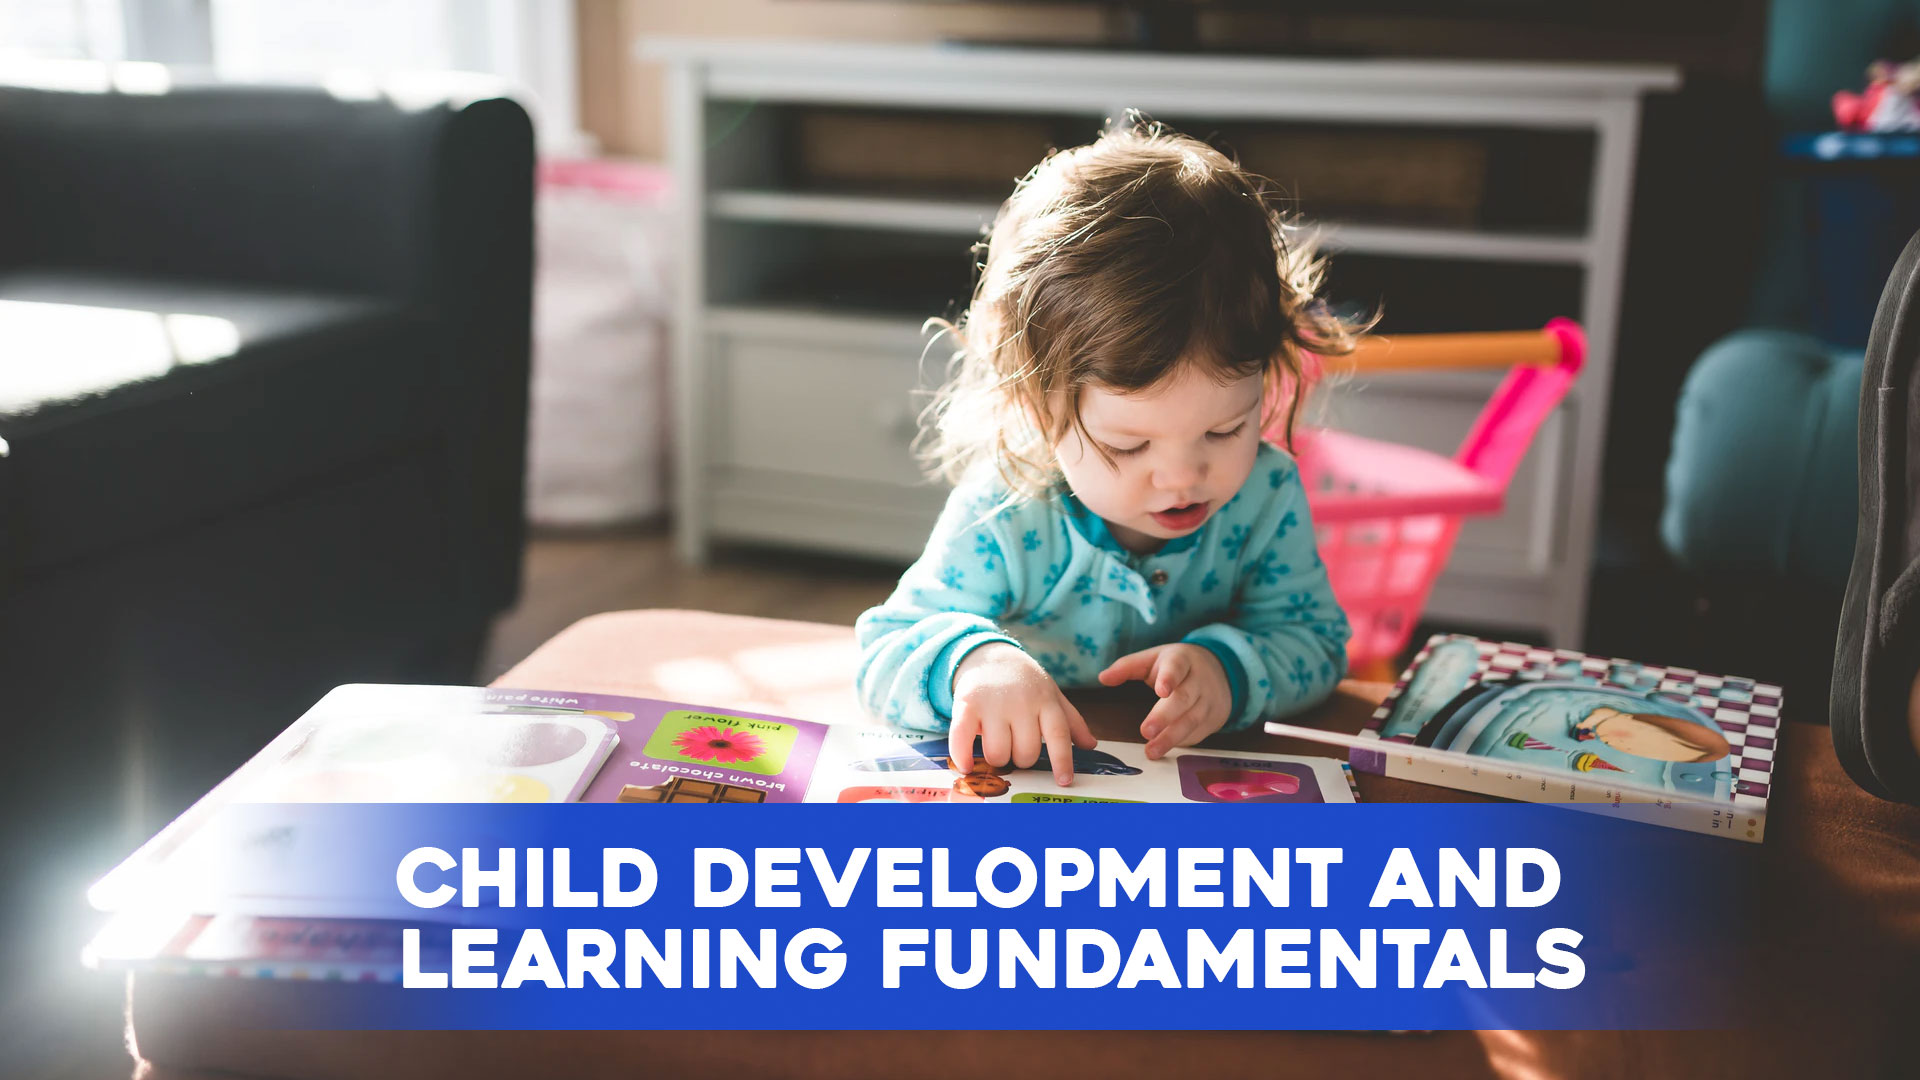 Child Development And Learning Fundamentals